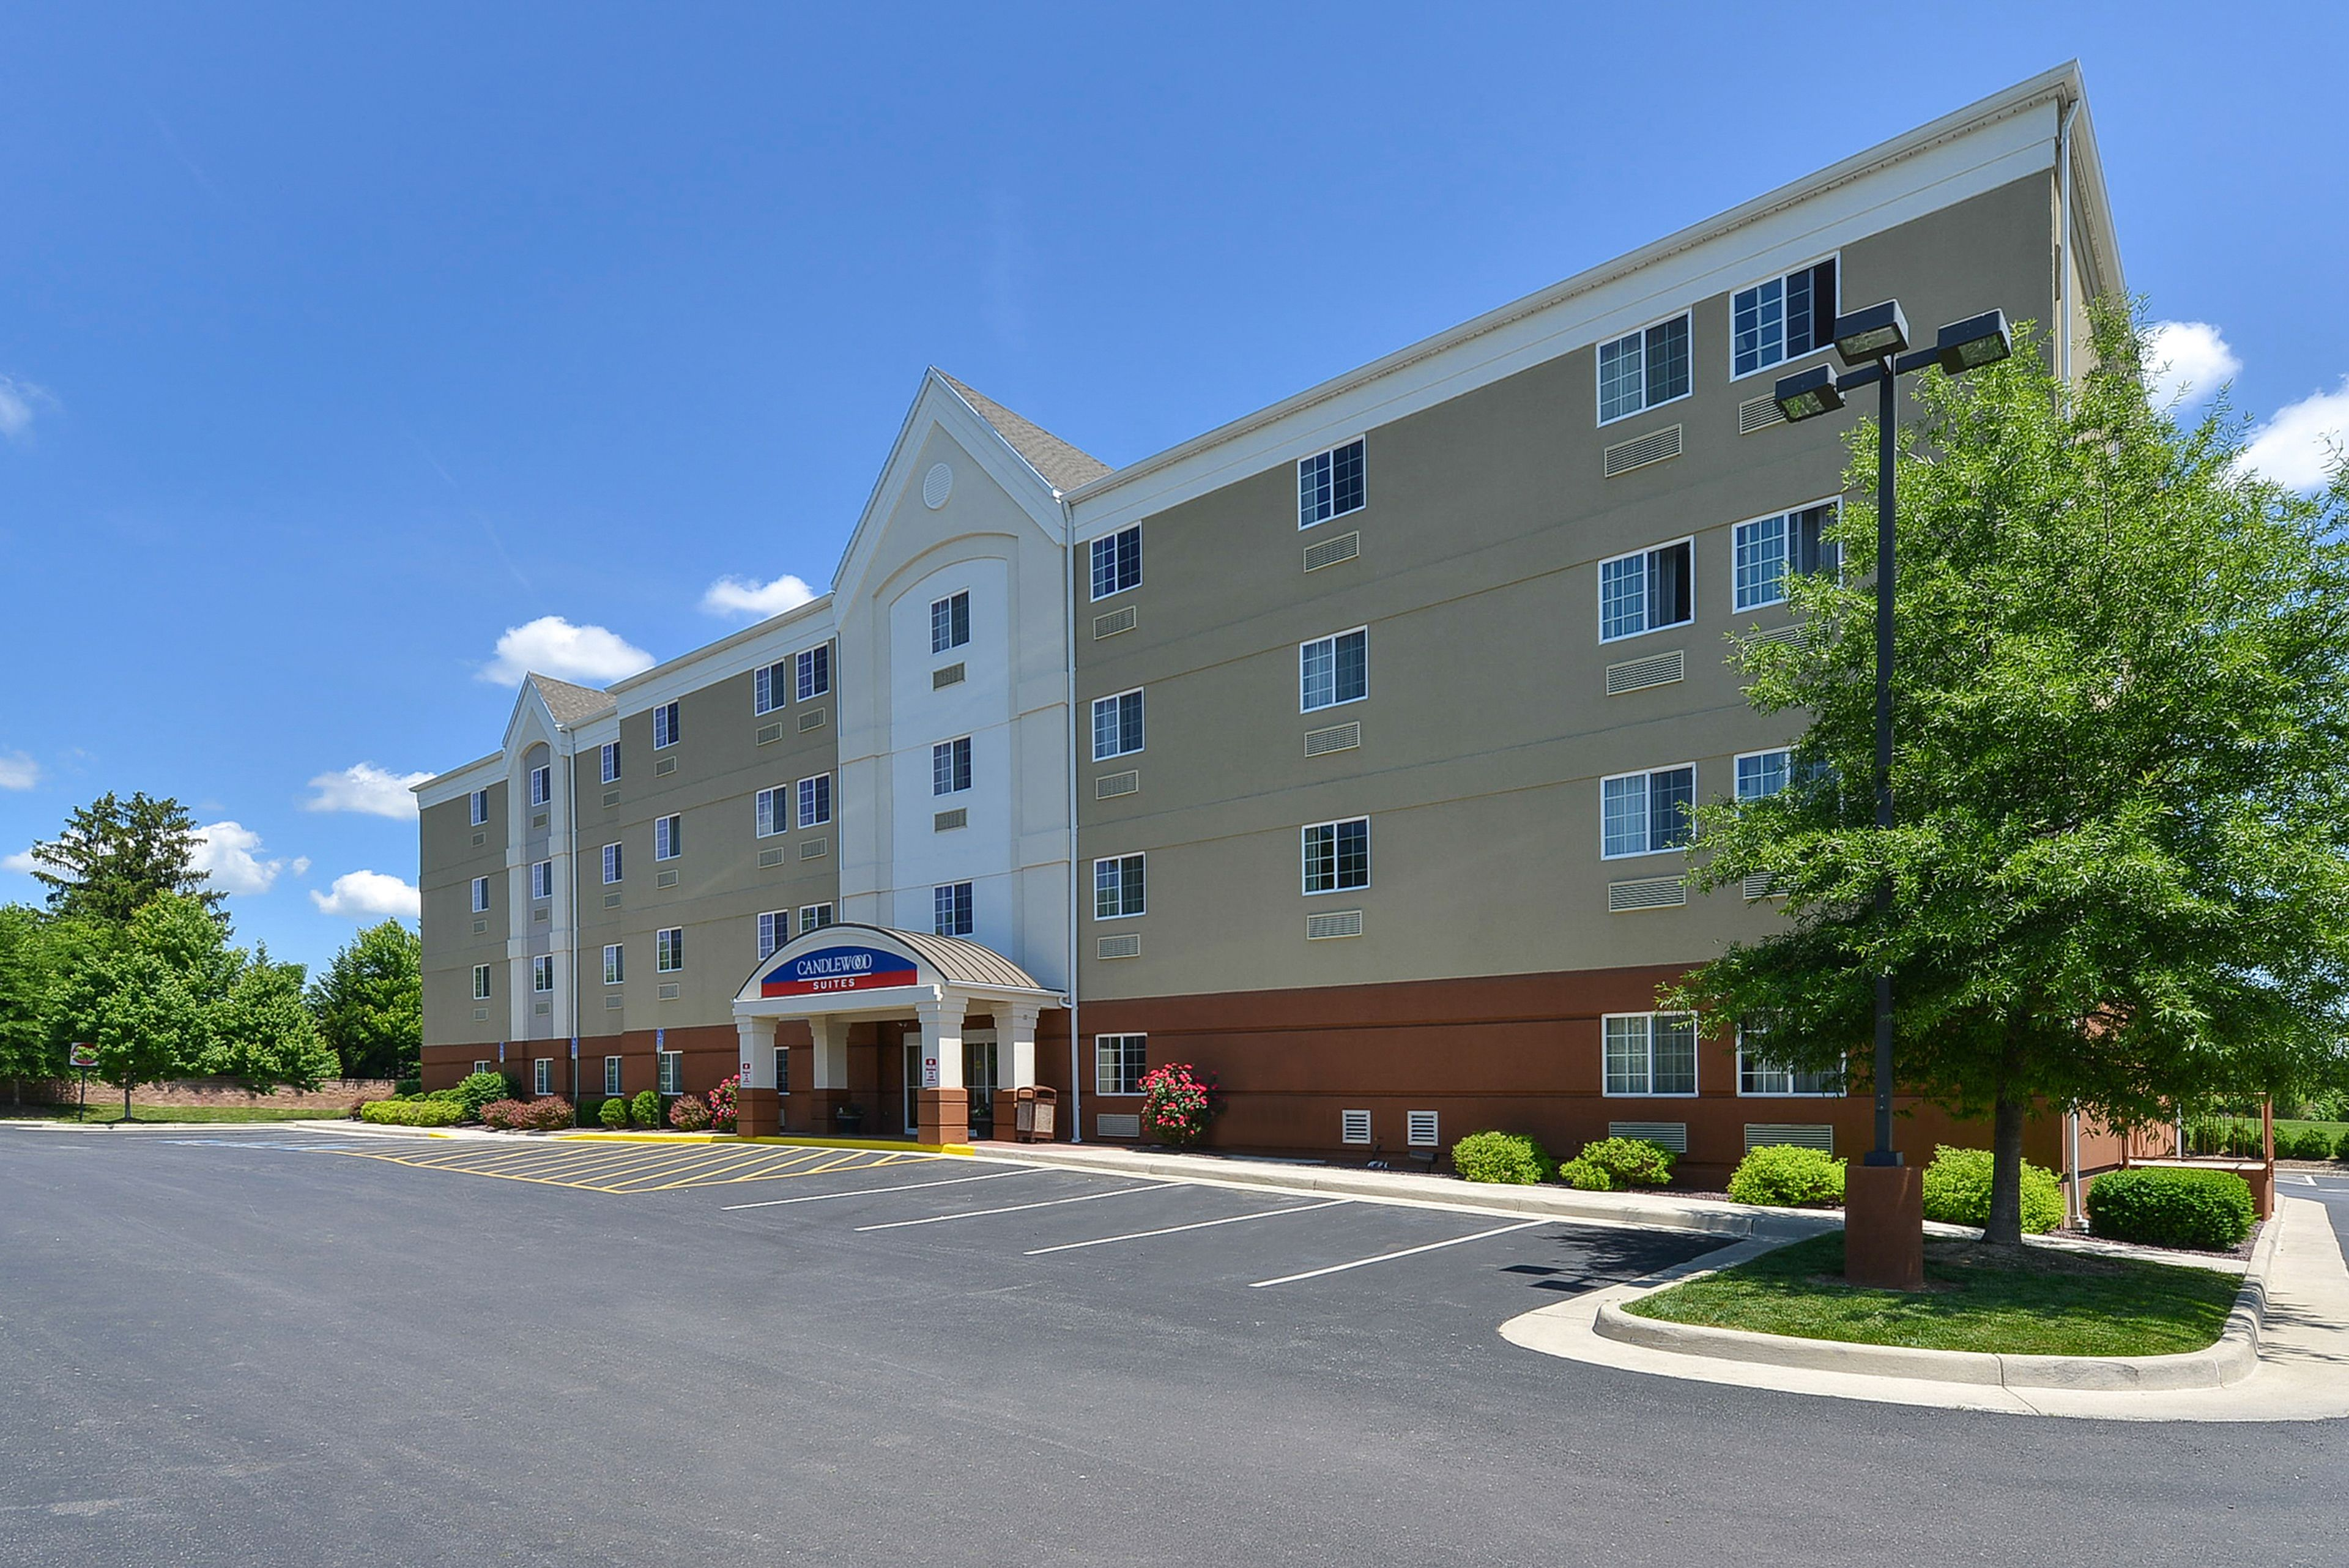 Candlewood Suites Winchester image 5